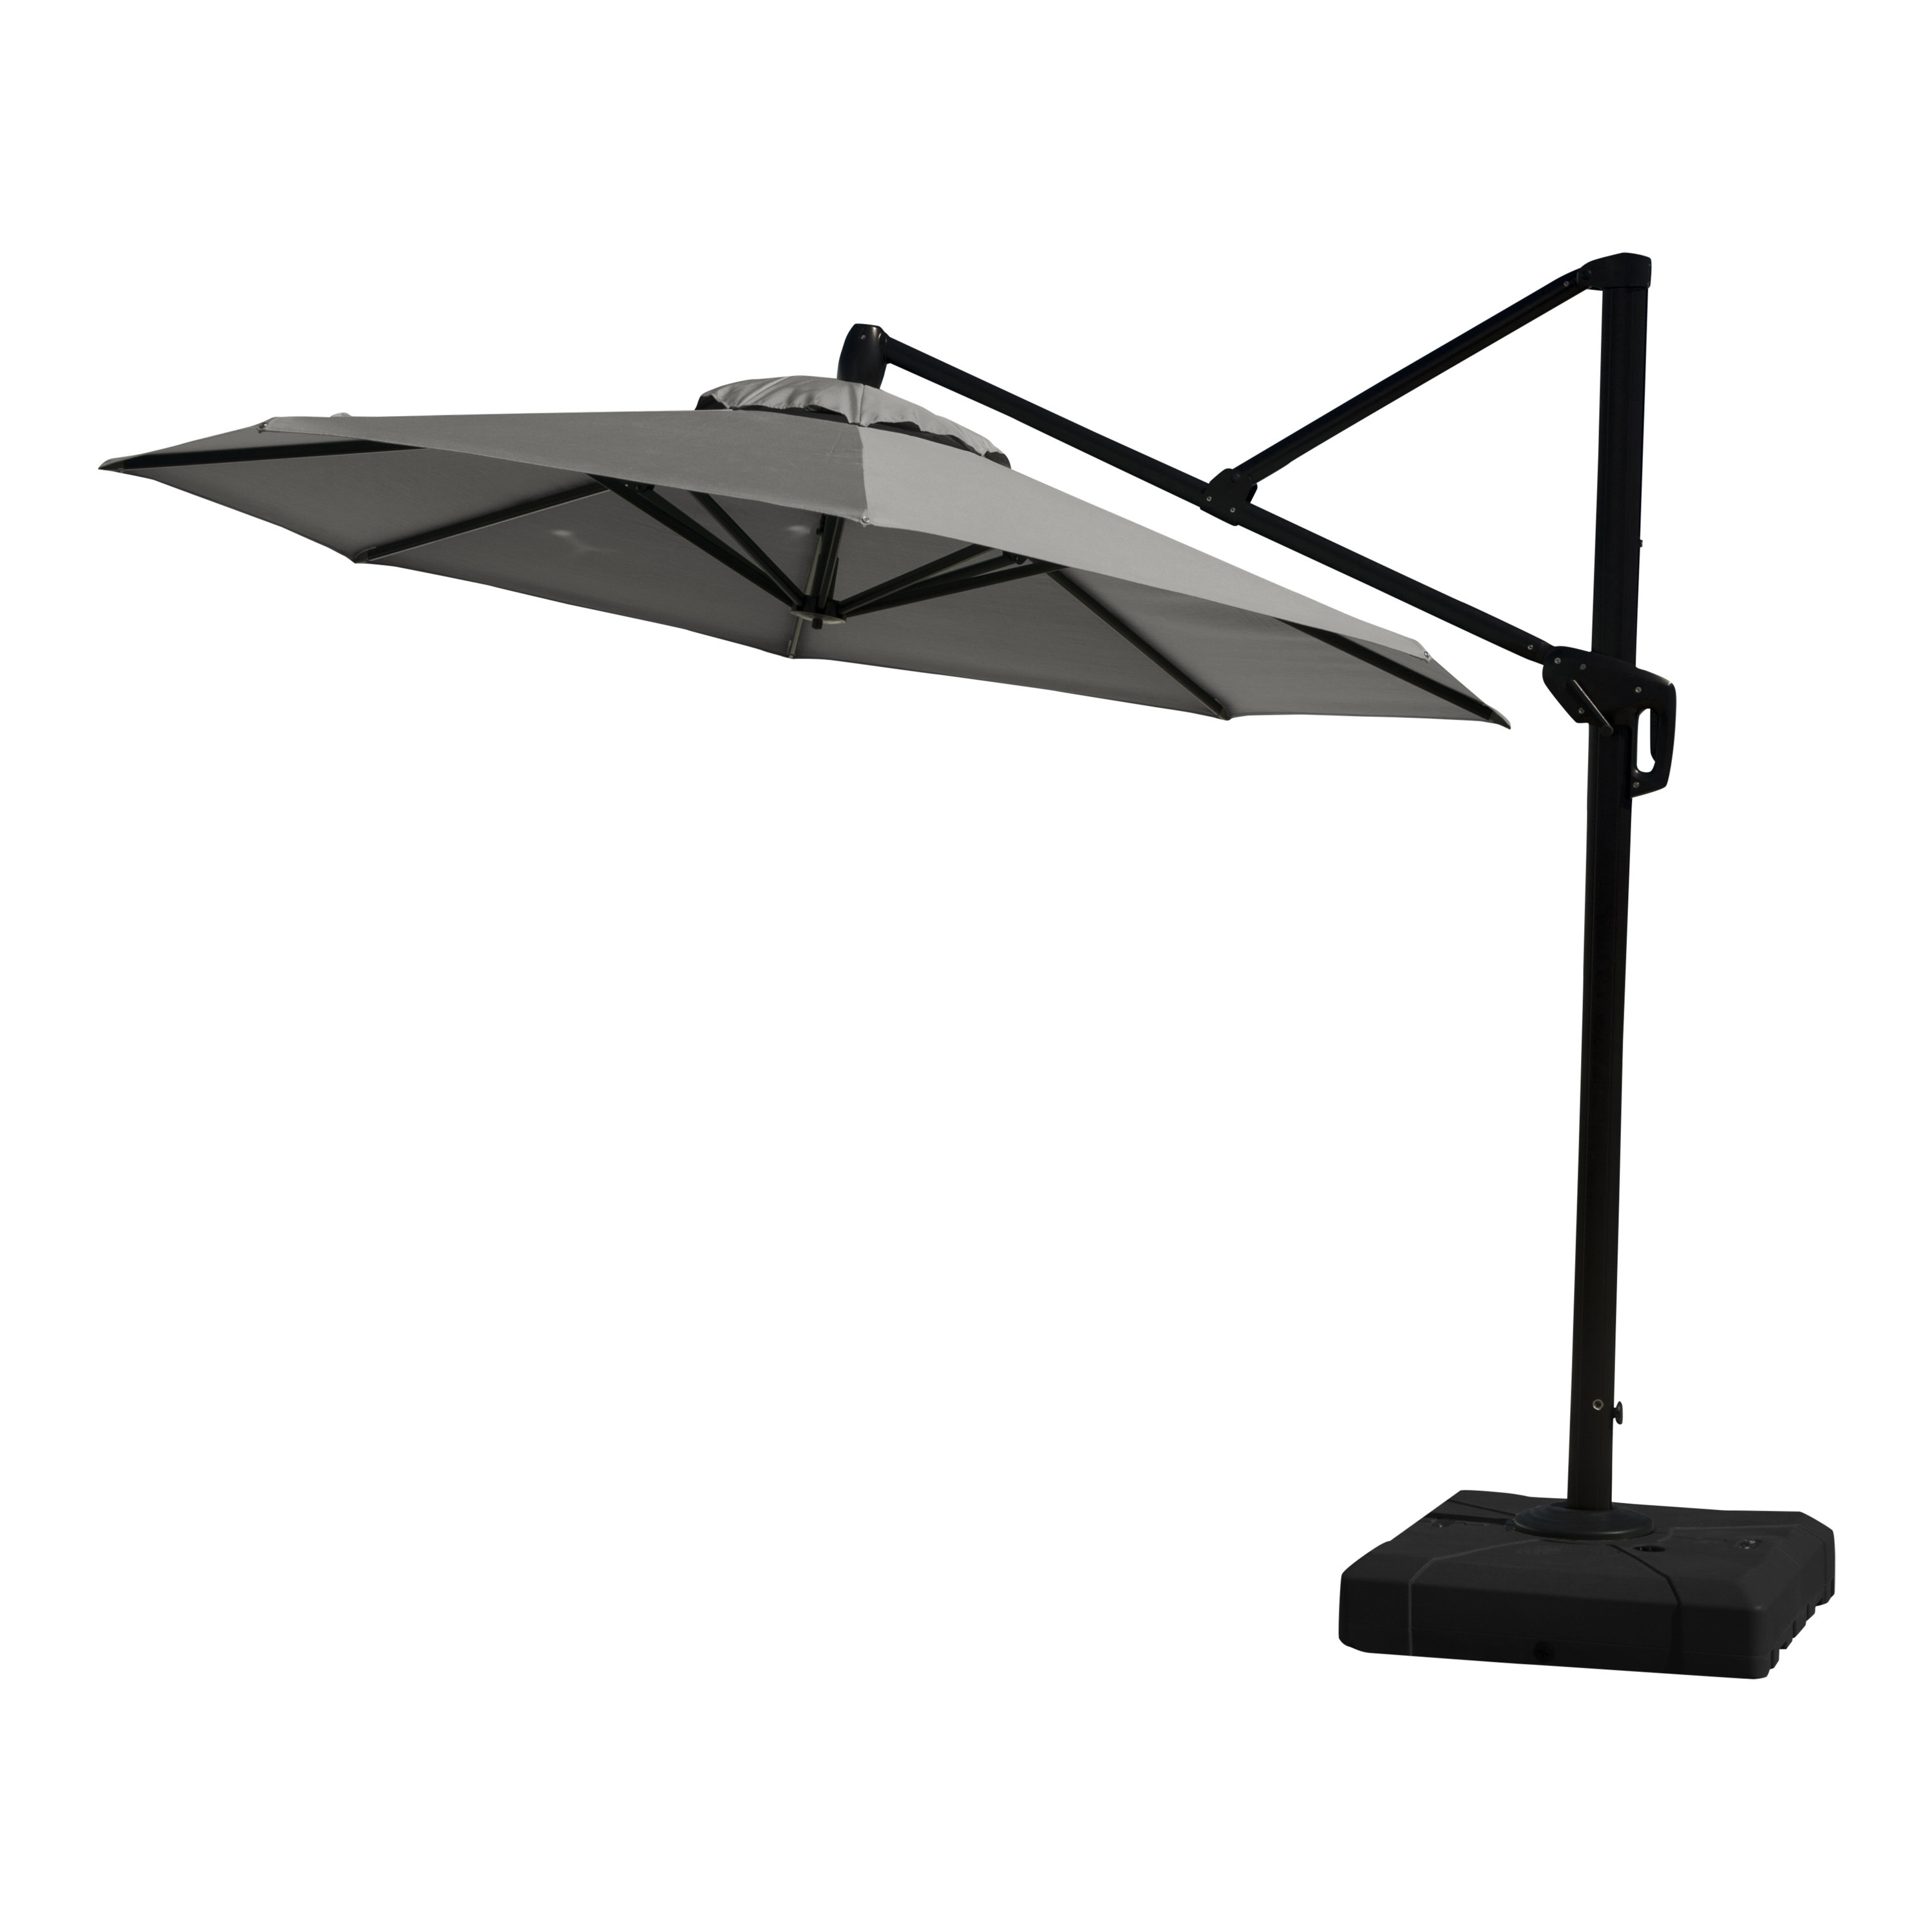 Ceylon 10' Cantilever Sunbrella Umbrella With Regard To Best And Newest Gribble 3Cantilever Umbrellas (View 4 of 20)